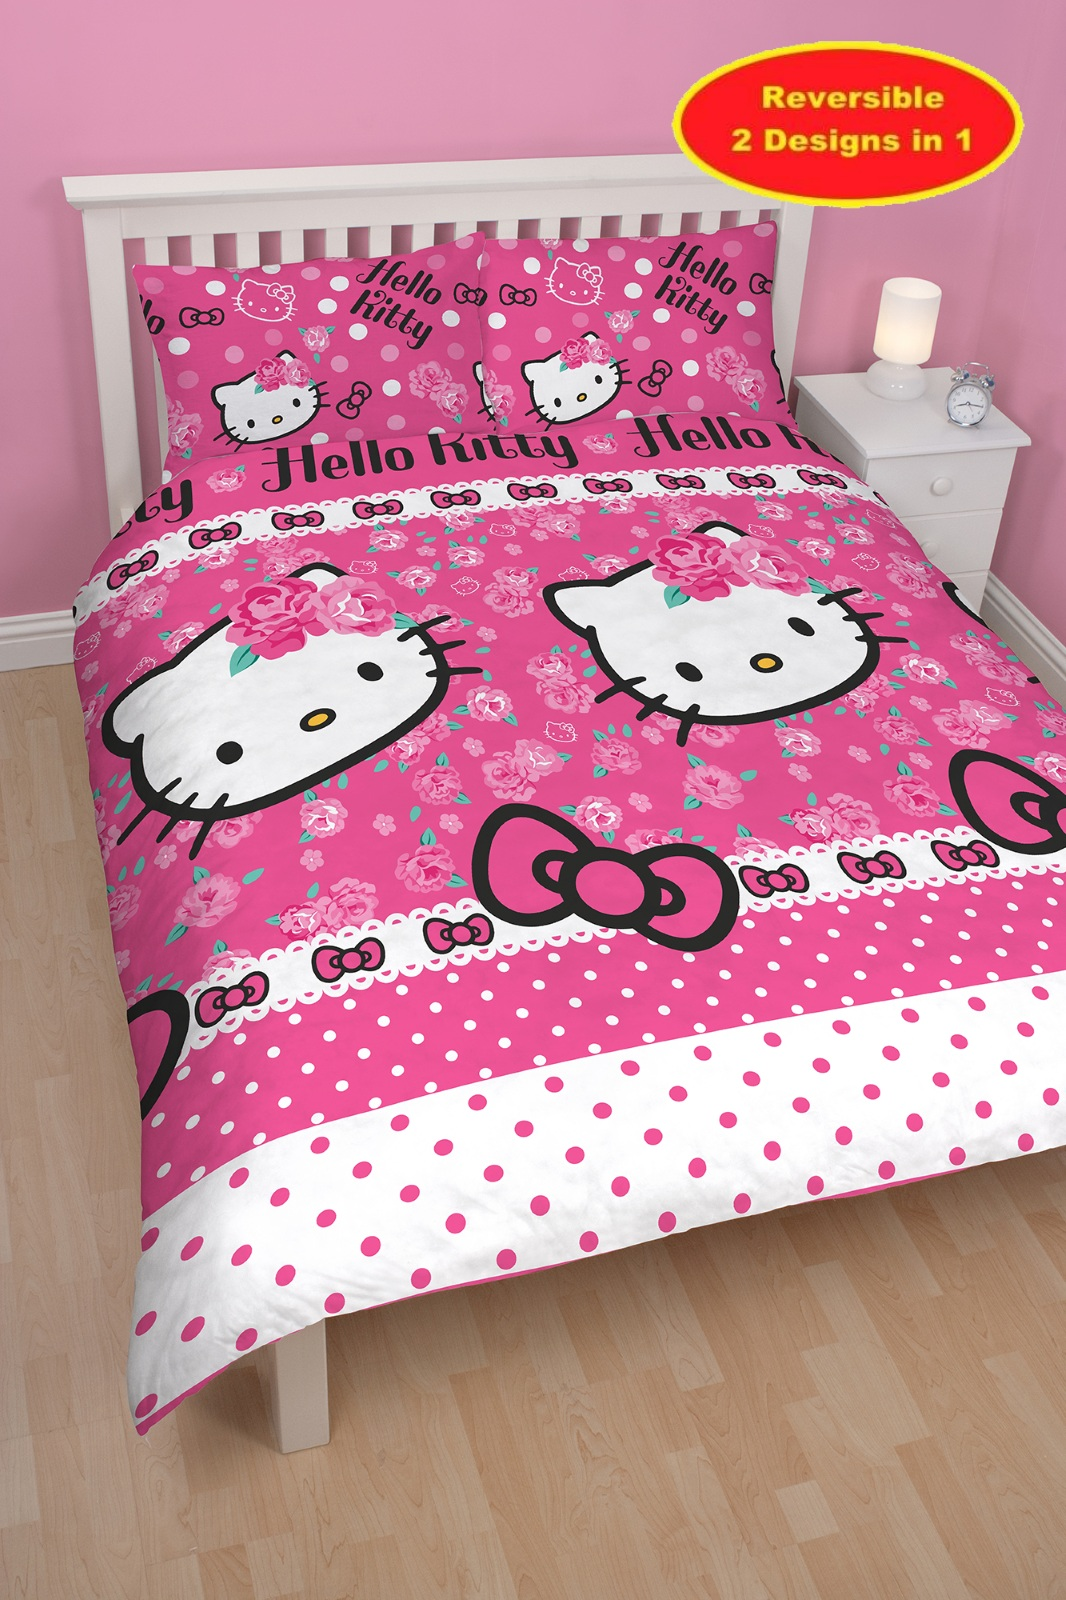 Hello kitty sommerwind doble colcha edred n y almohada - Cama doble para ninos ...